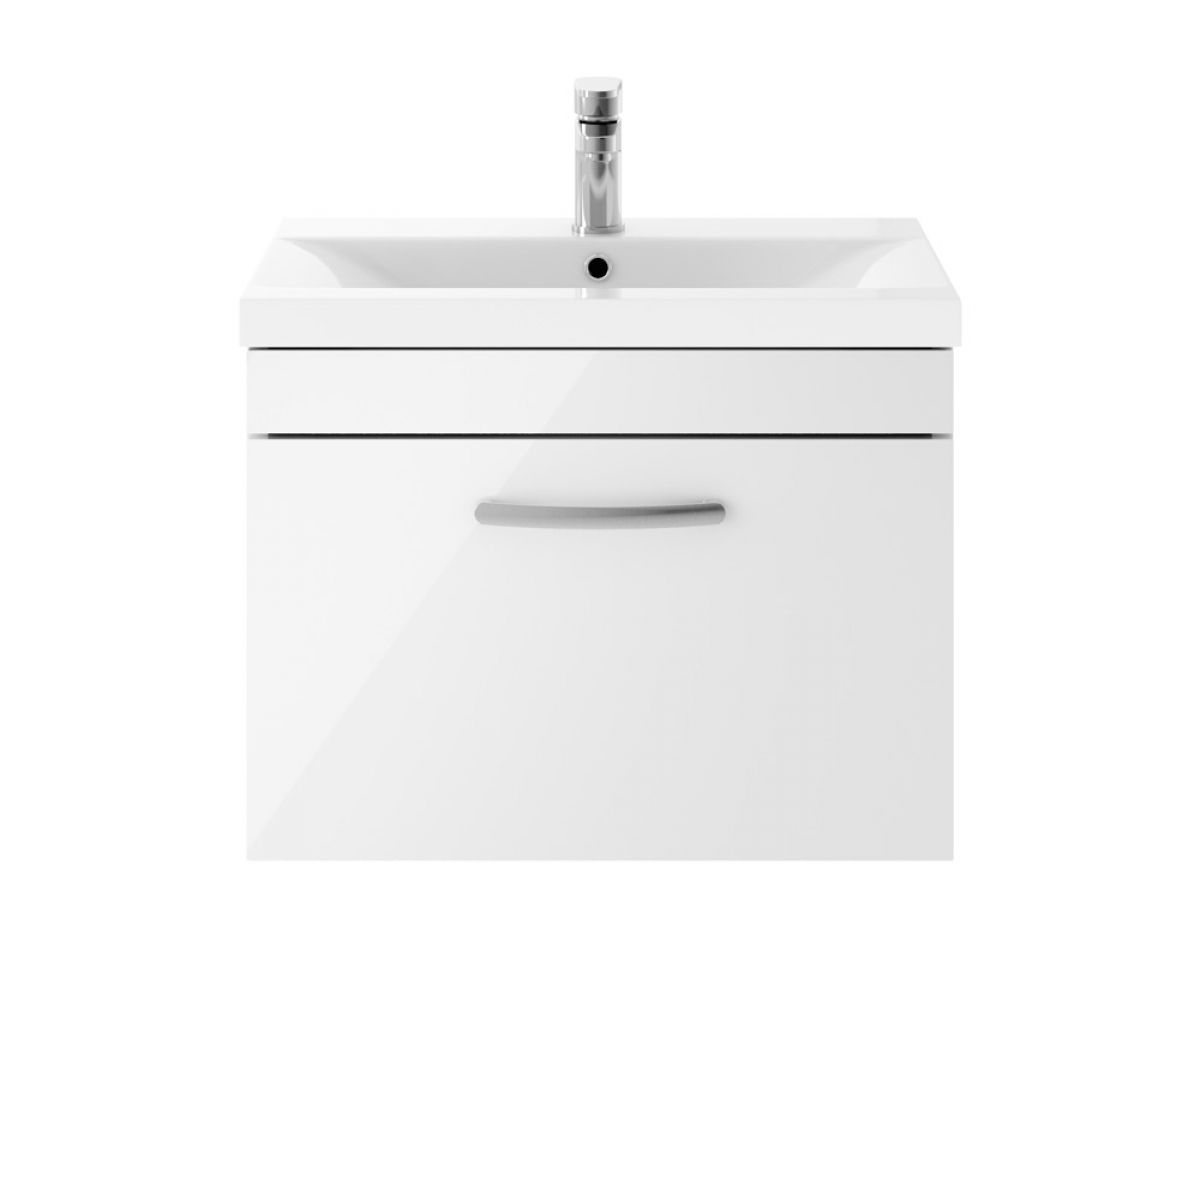 Premier Athena Gloss White 1 Drawer Wall Hung Vanity Unit 600mm with Mid Edge Basin